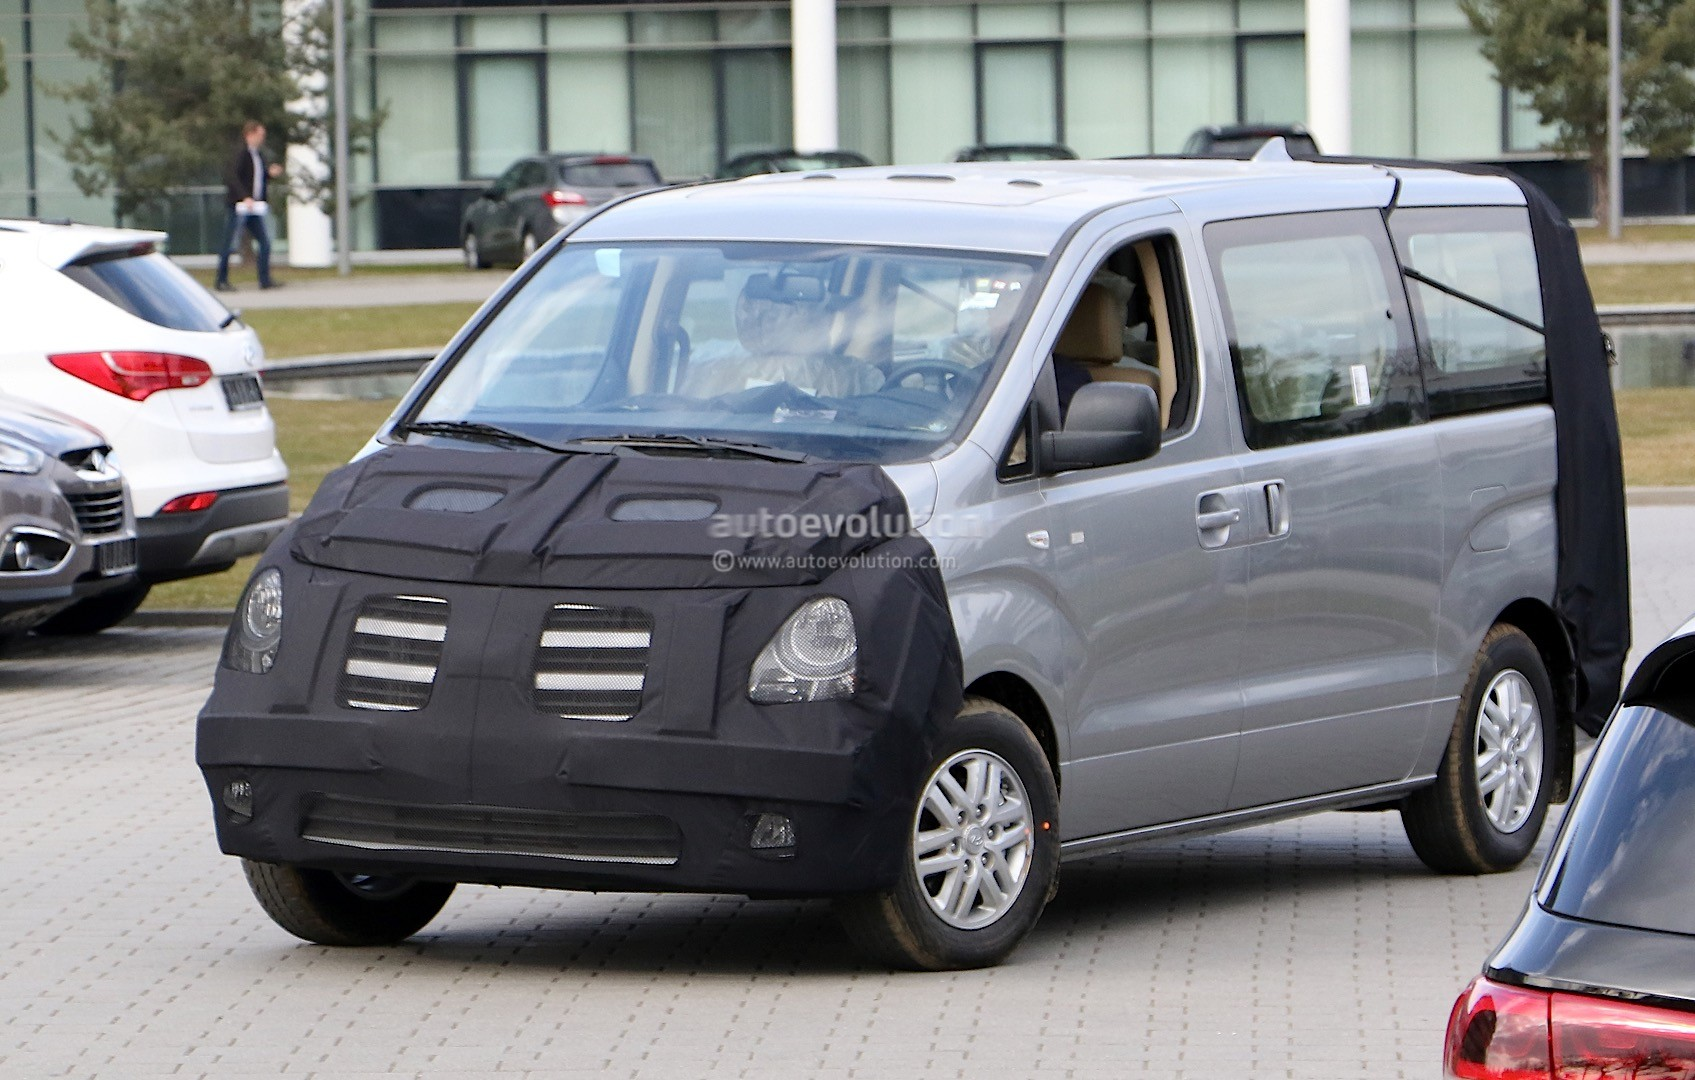 Hyundai H-1 Facelift Spied in Germany - autoevolution